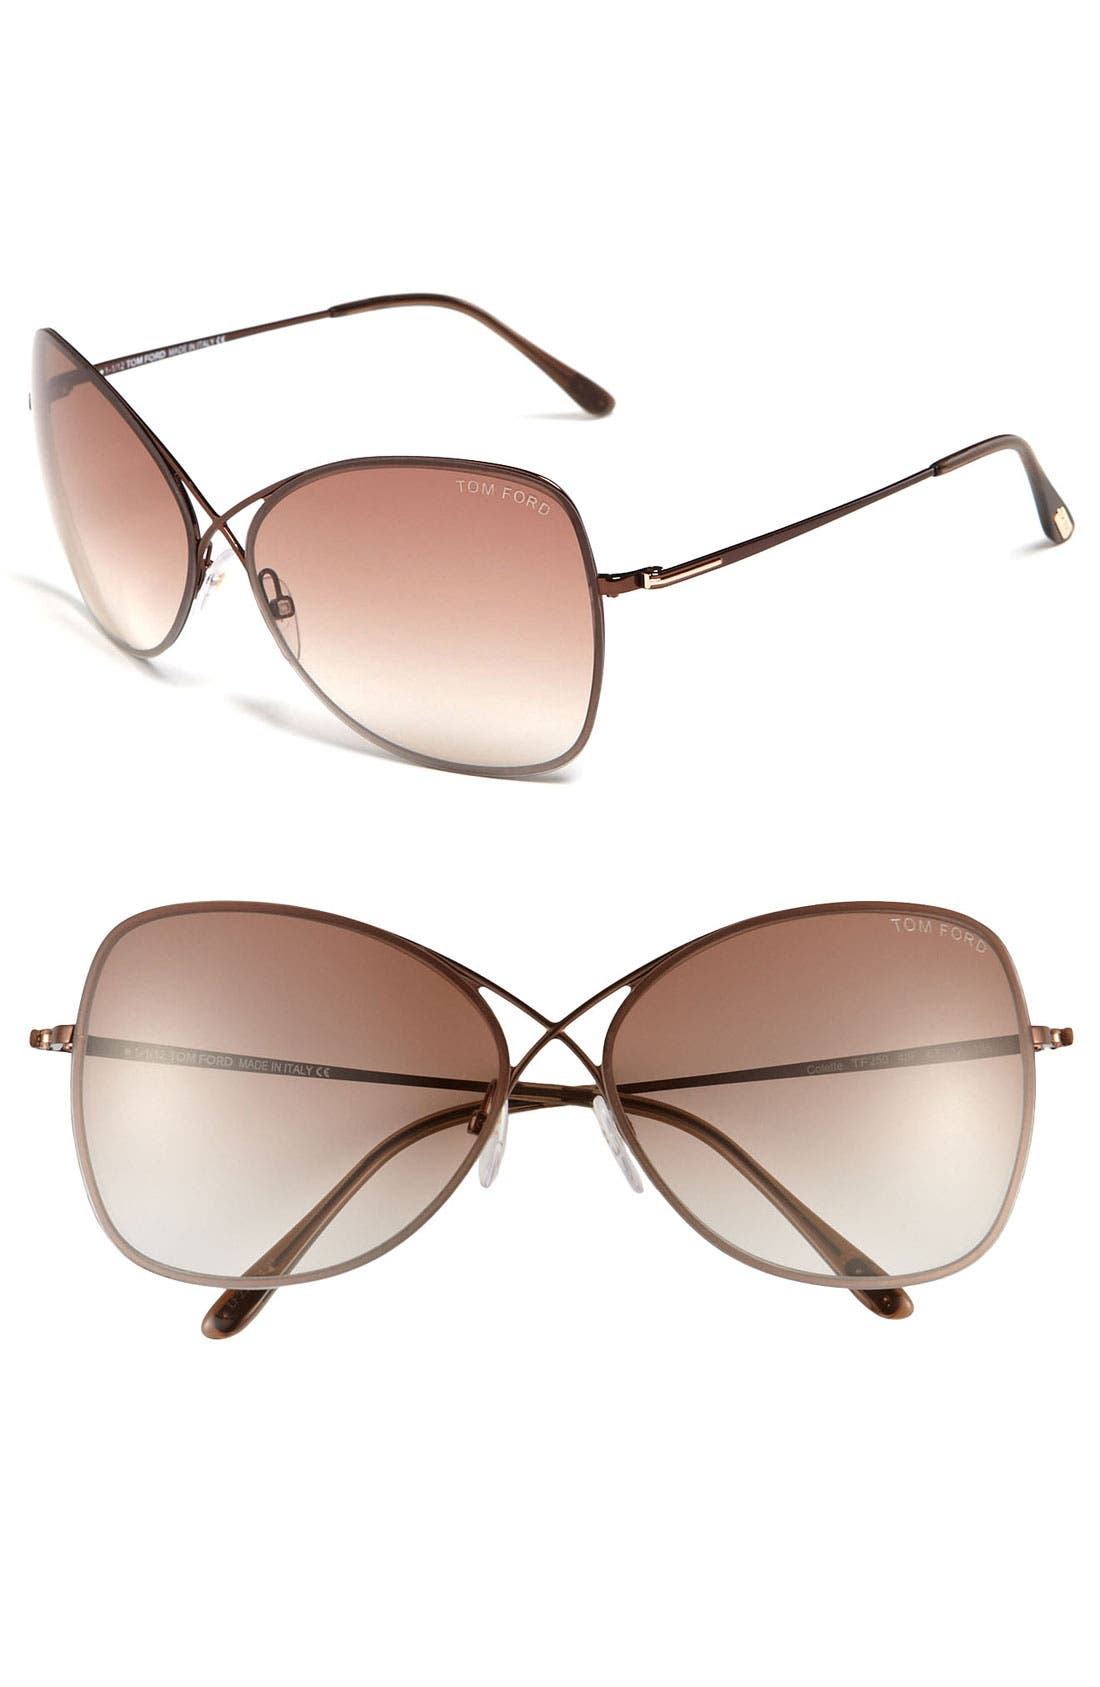 Alternate Image 1 Selected - Tom Ford 'Colette' 63mm Oversized Sunglasses